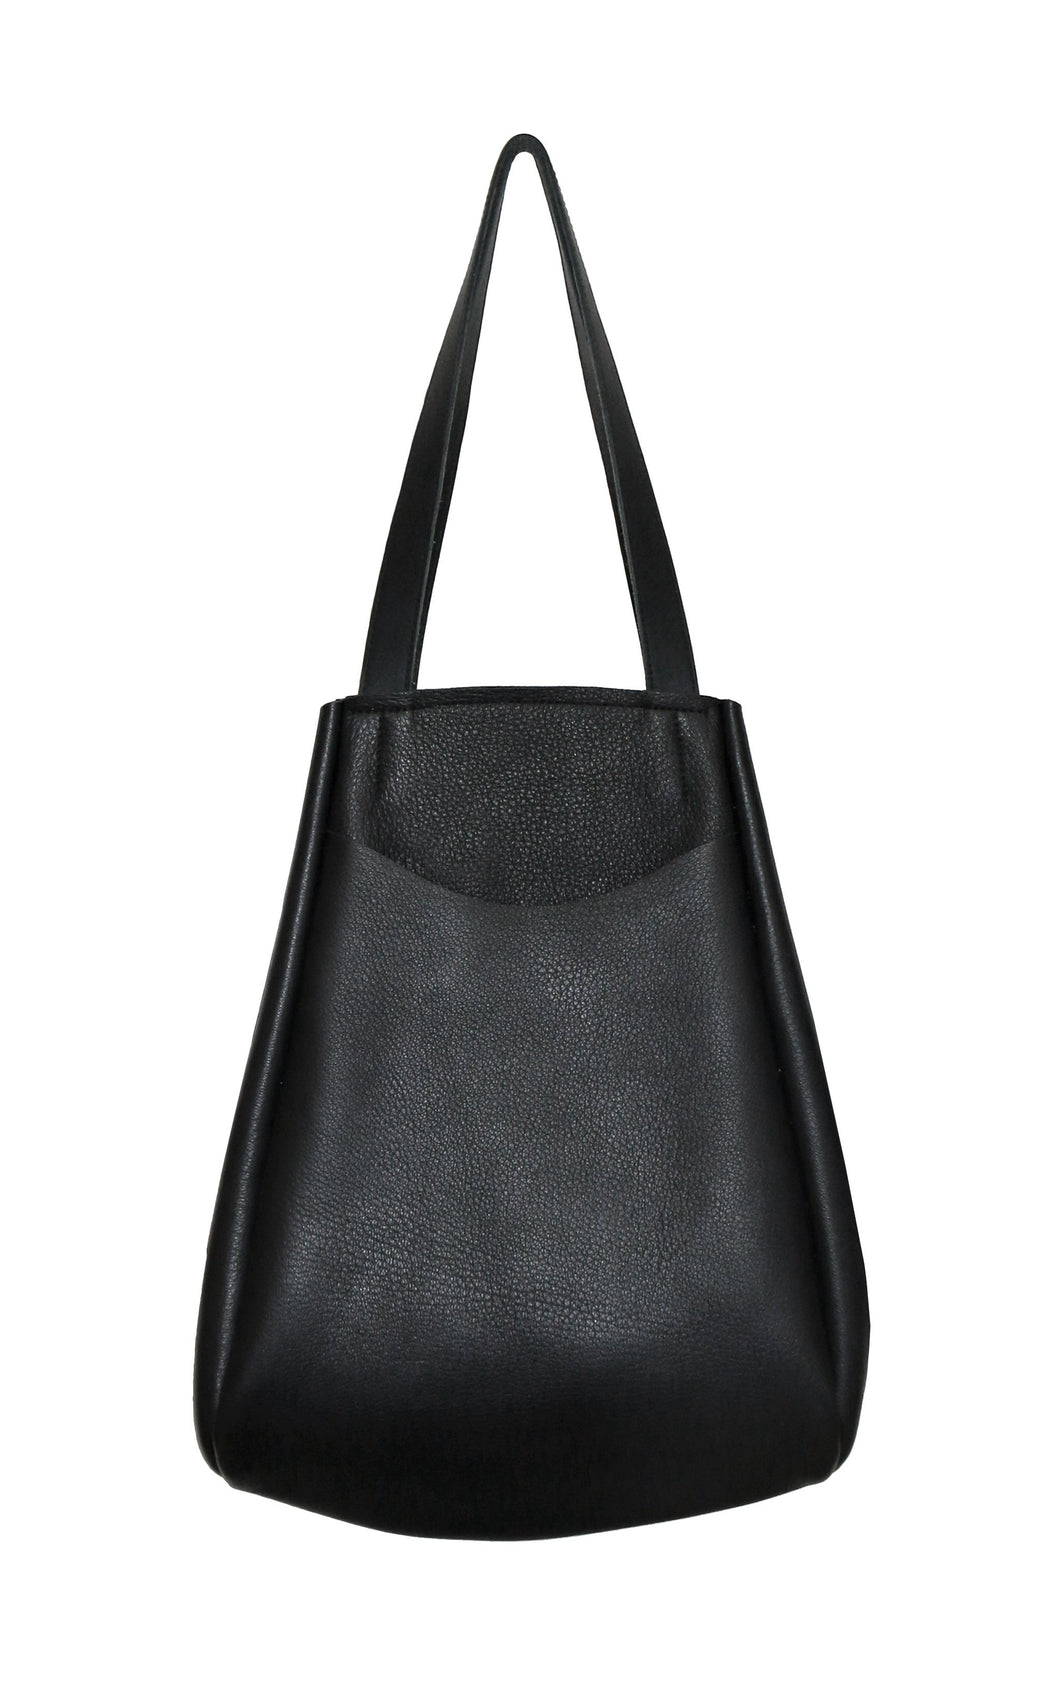 Archy Tote - Black Pebble